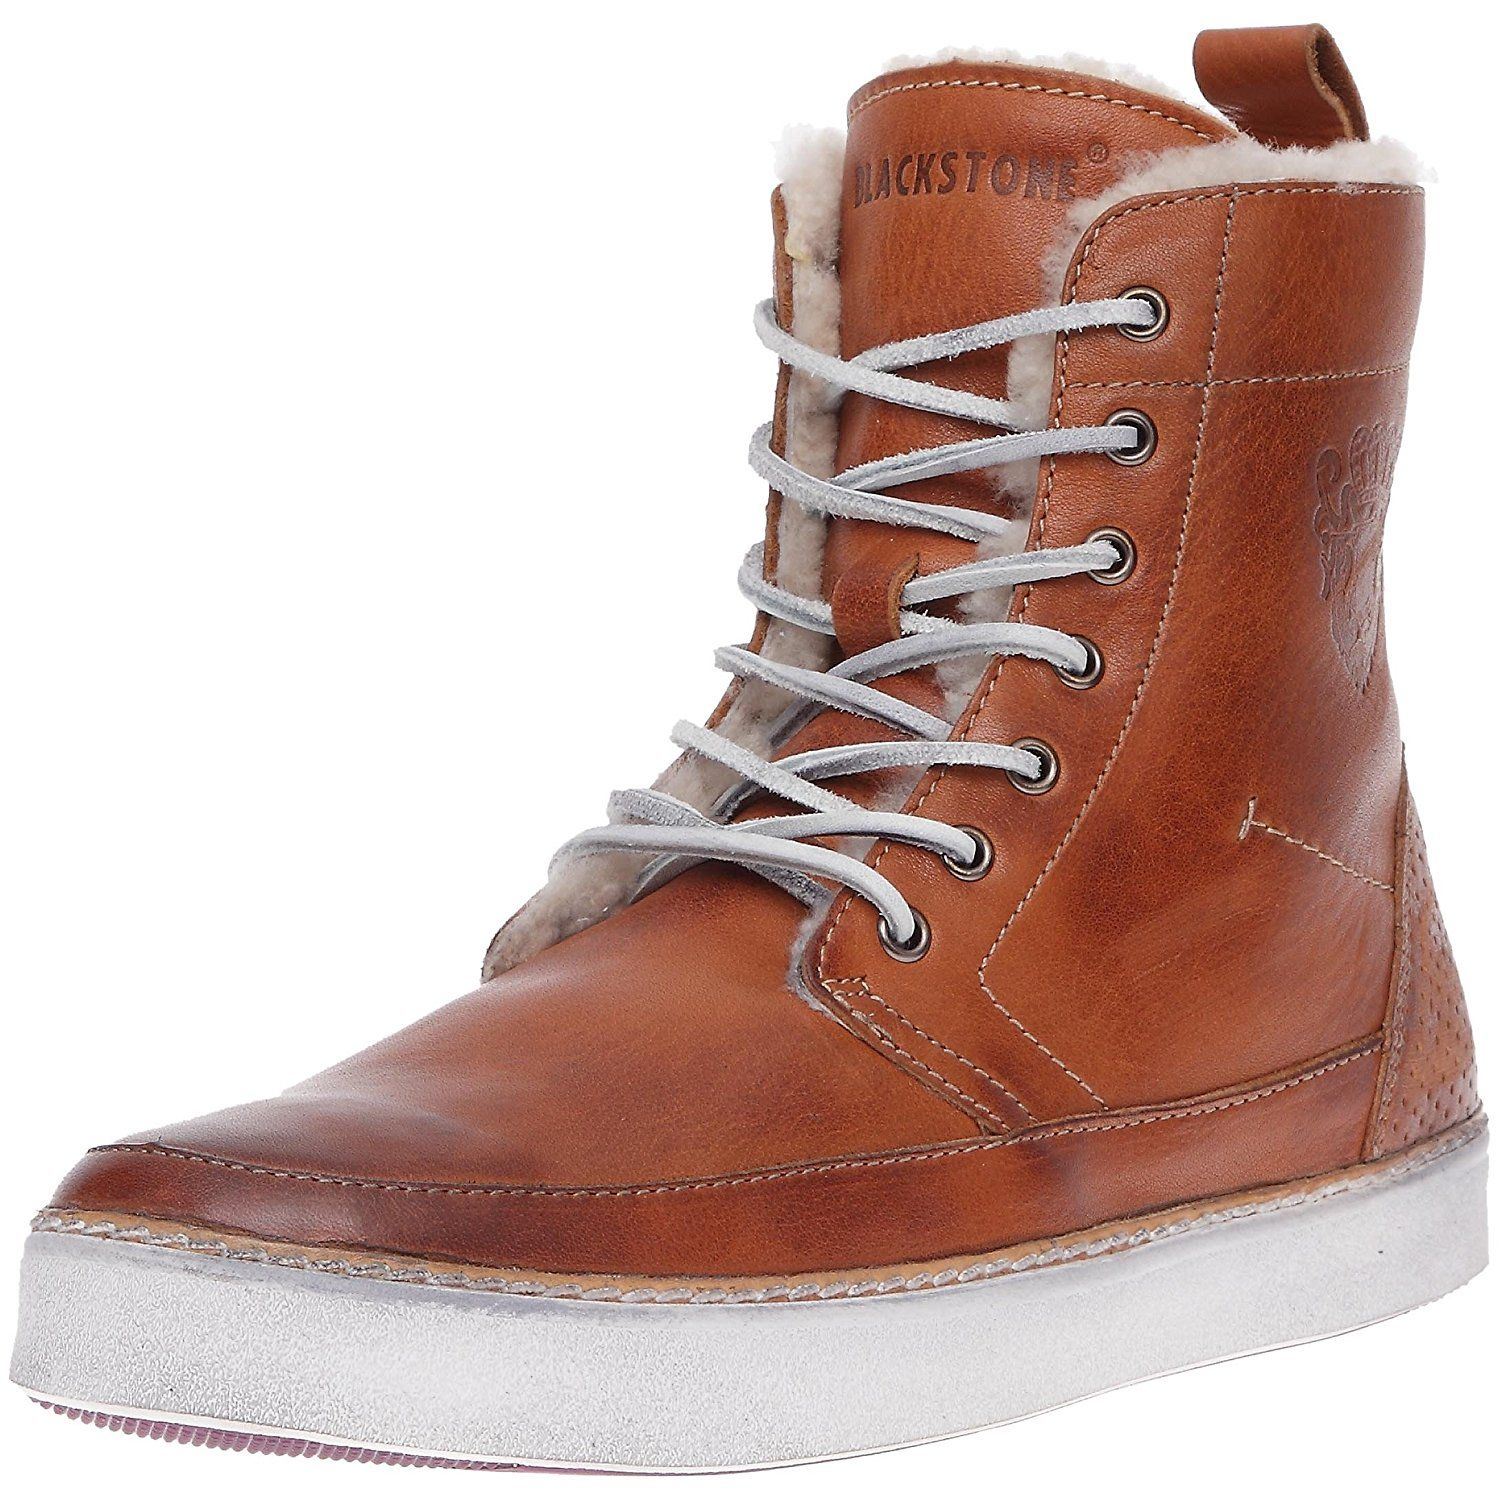 Mens snow boots, Sneakers